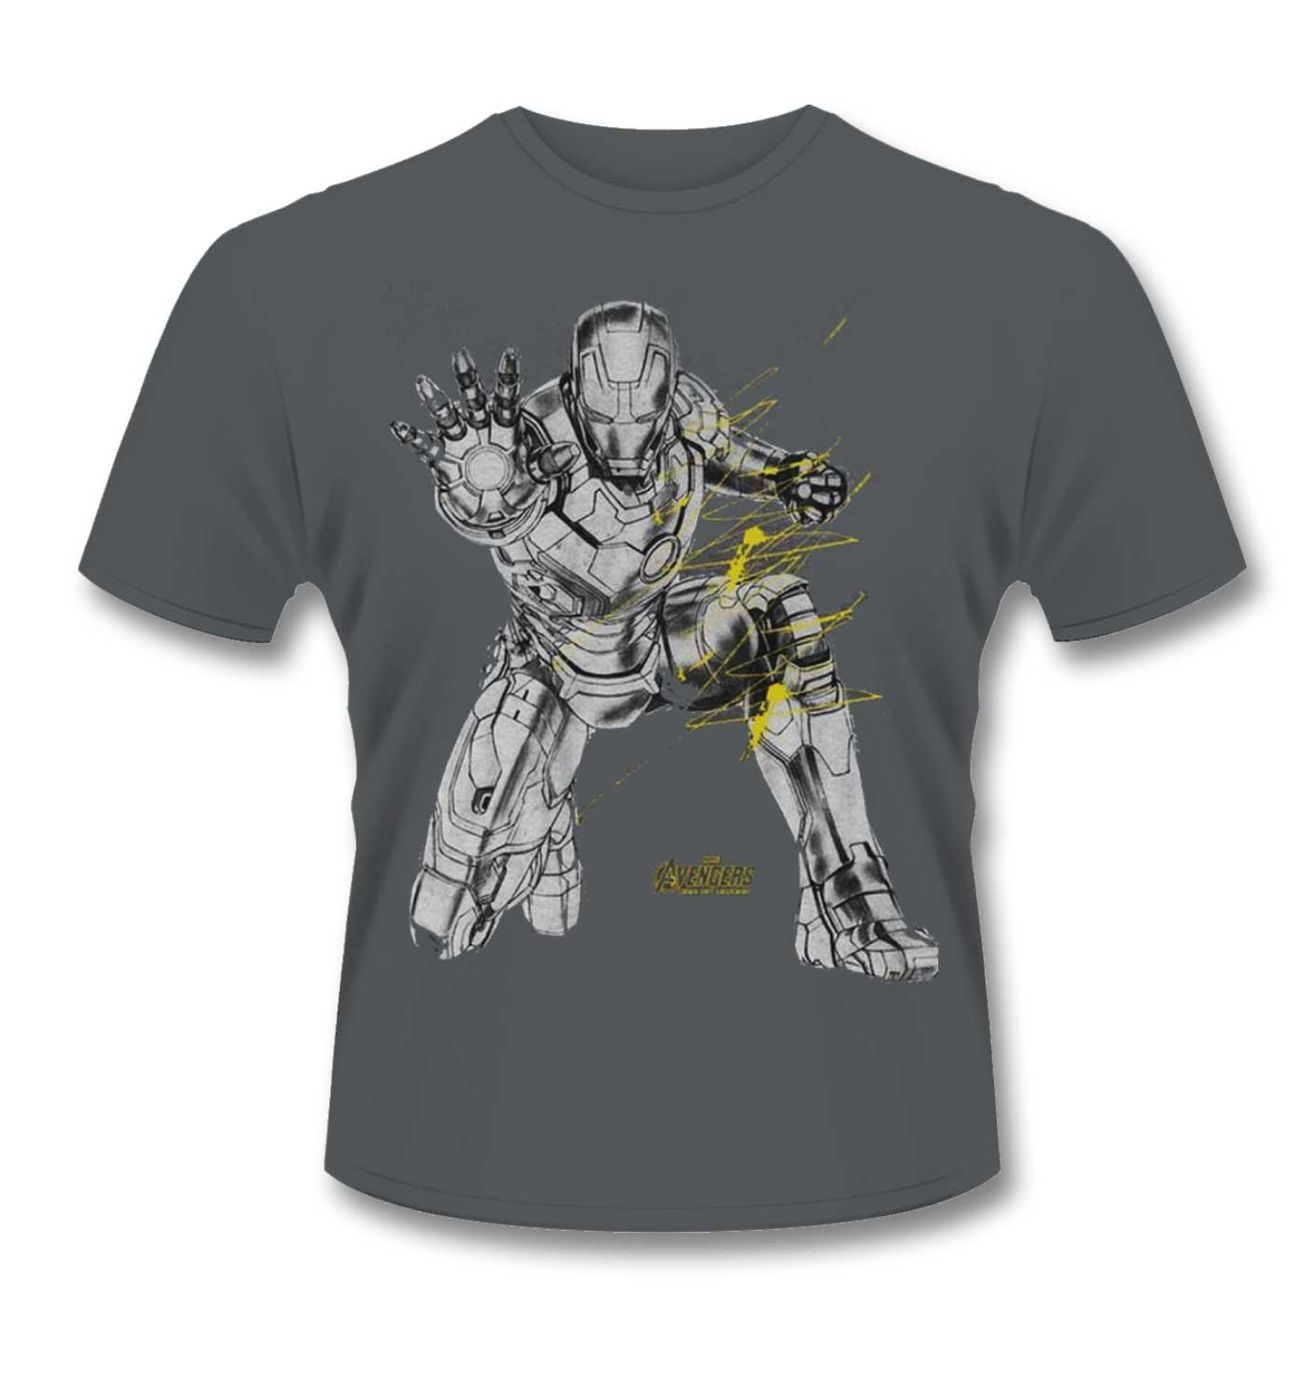 Iron Man t-shirt - Official Marvel Avengers:Age Of Ultron Iron Man tee